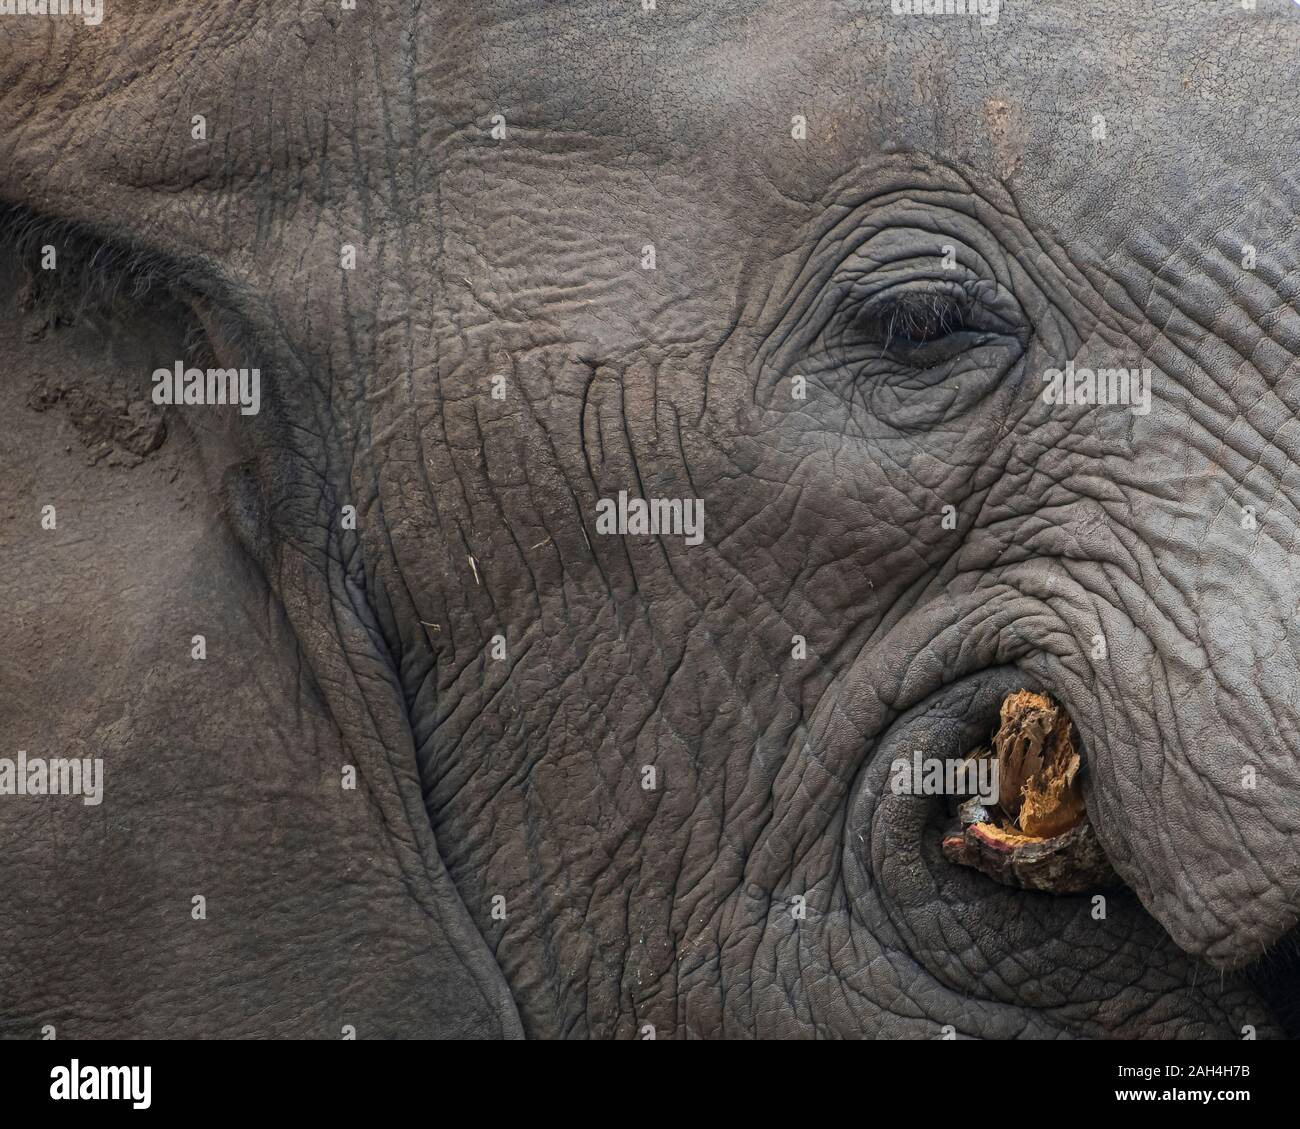 Portrait of an Elephant's Eye and Face while Chewing a Tree in South Africa Stock Photo